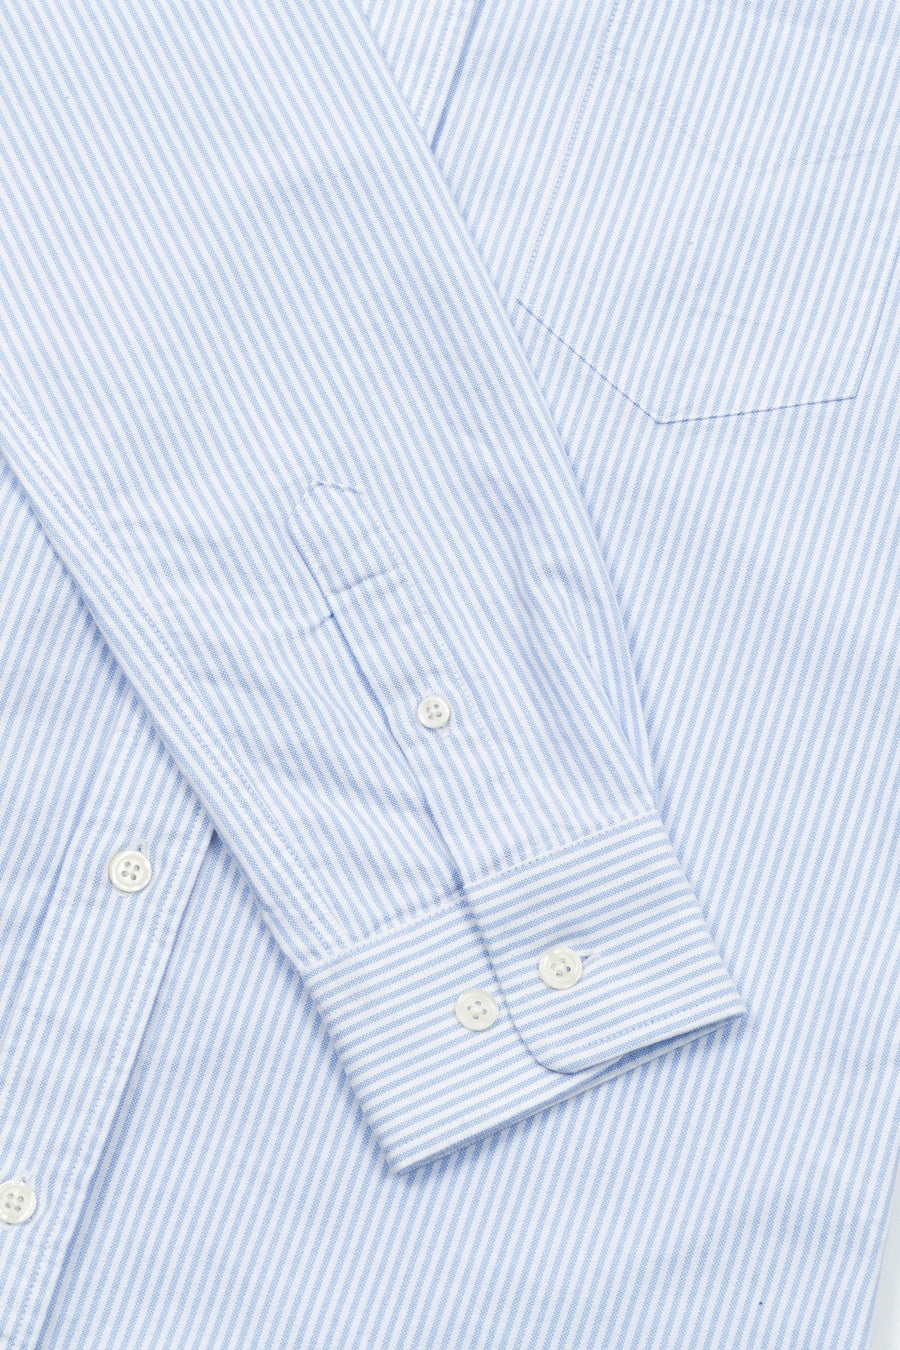 The Thin Striped Oxford